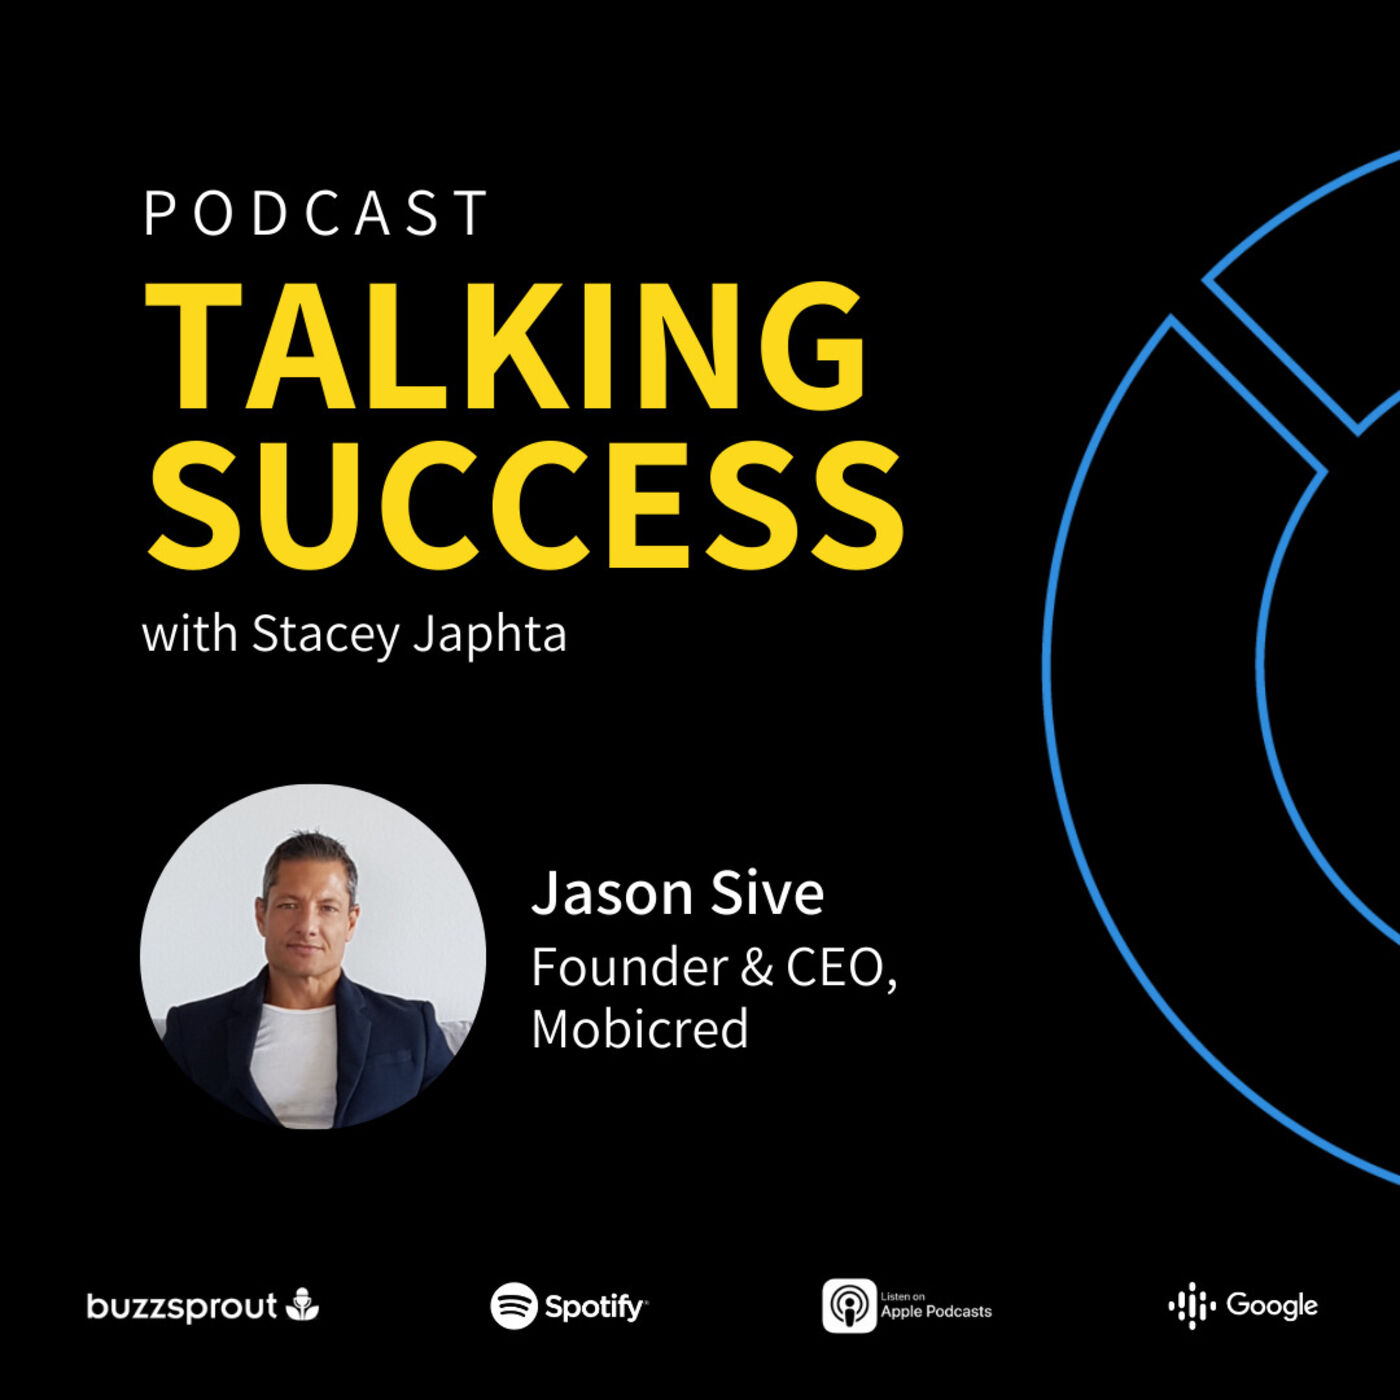 Jason Sive, Founder & CEO of Mobicred - All things FinTech, right time to launch a product, and getting to know your customers